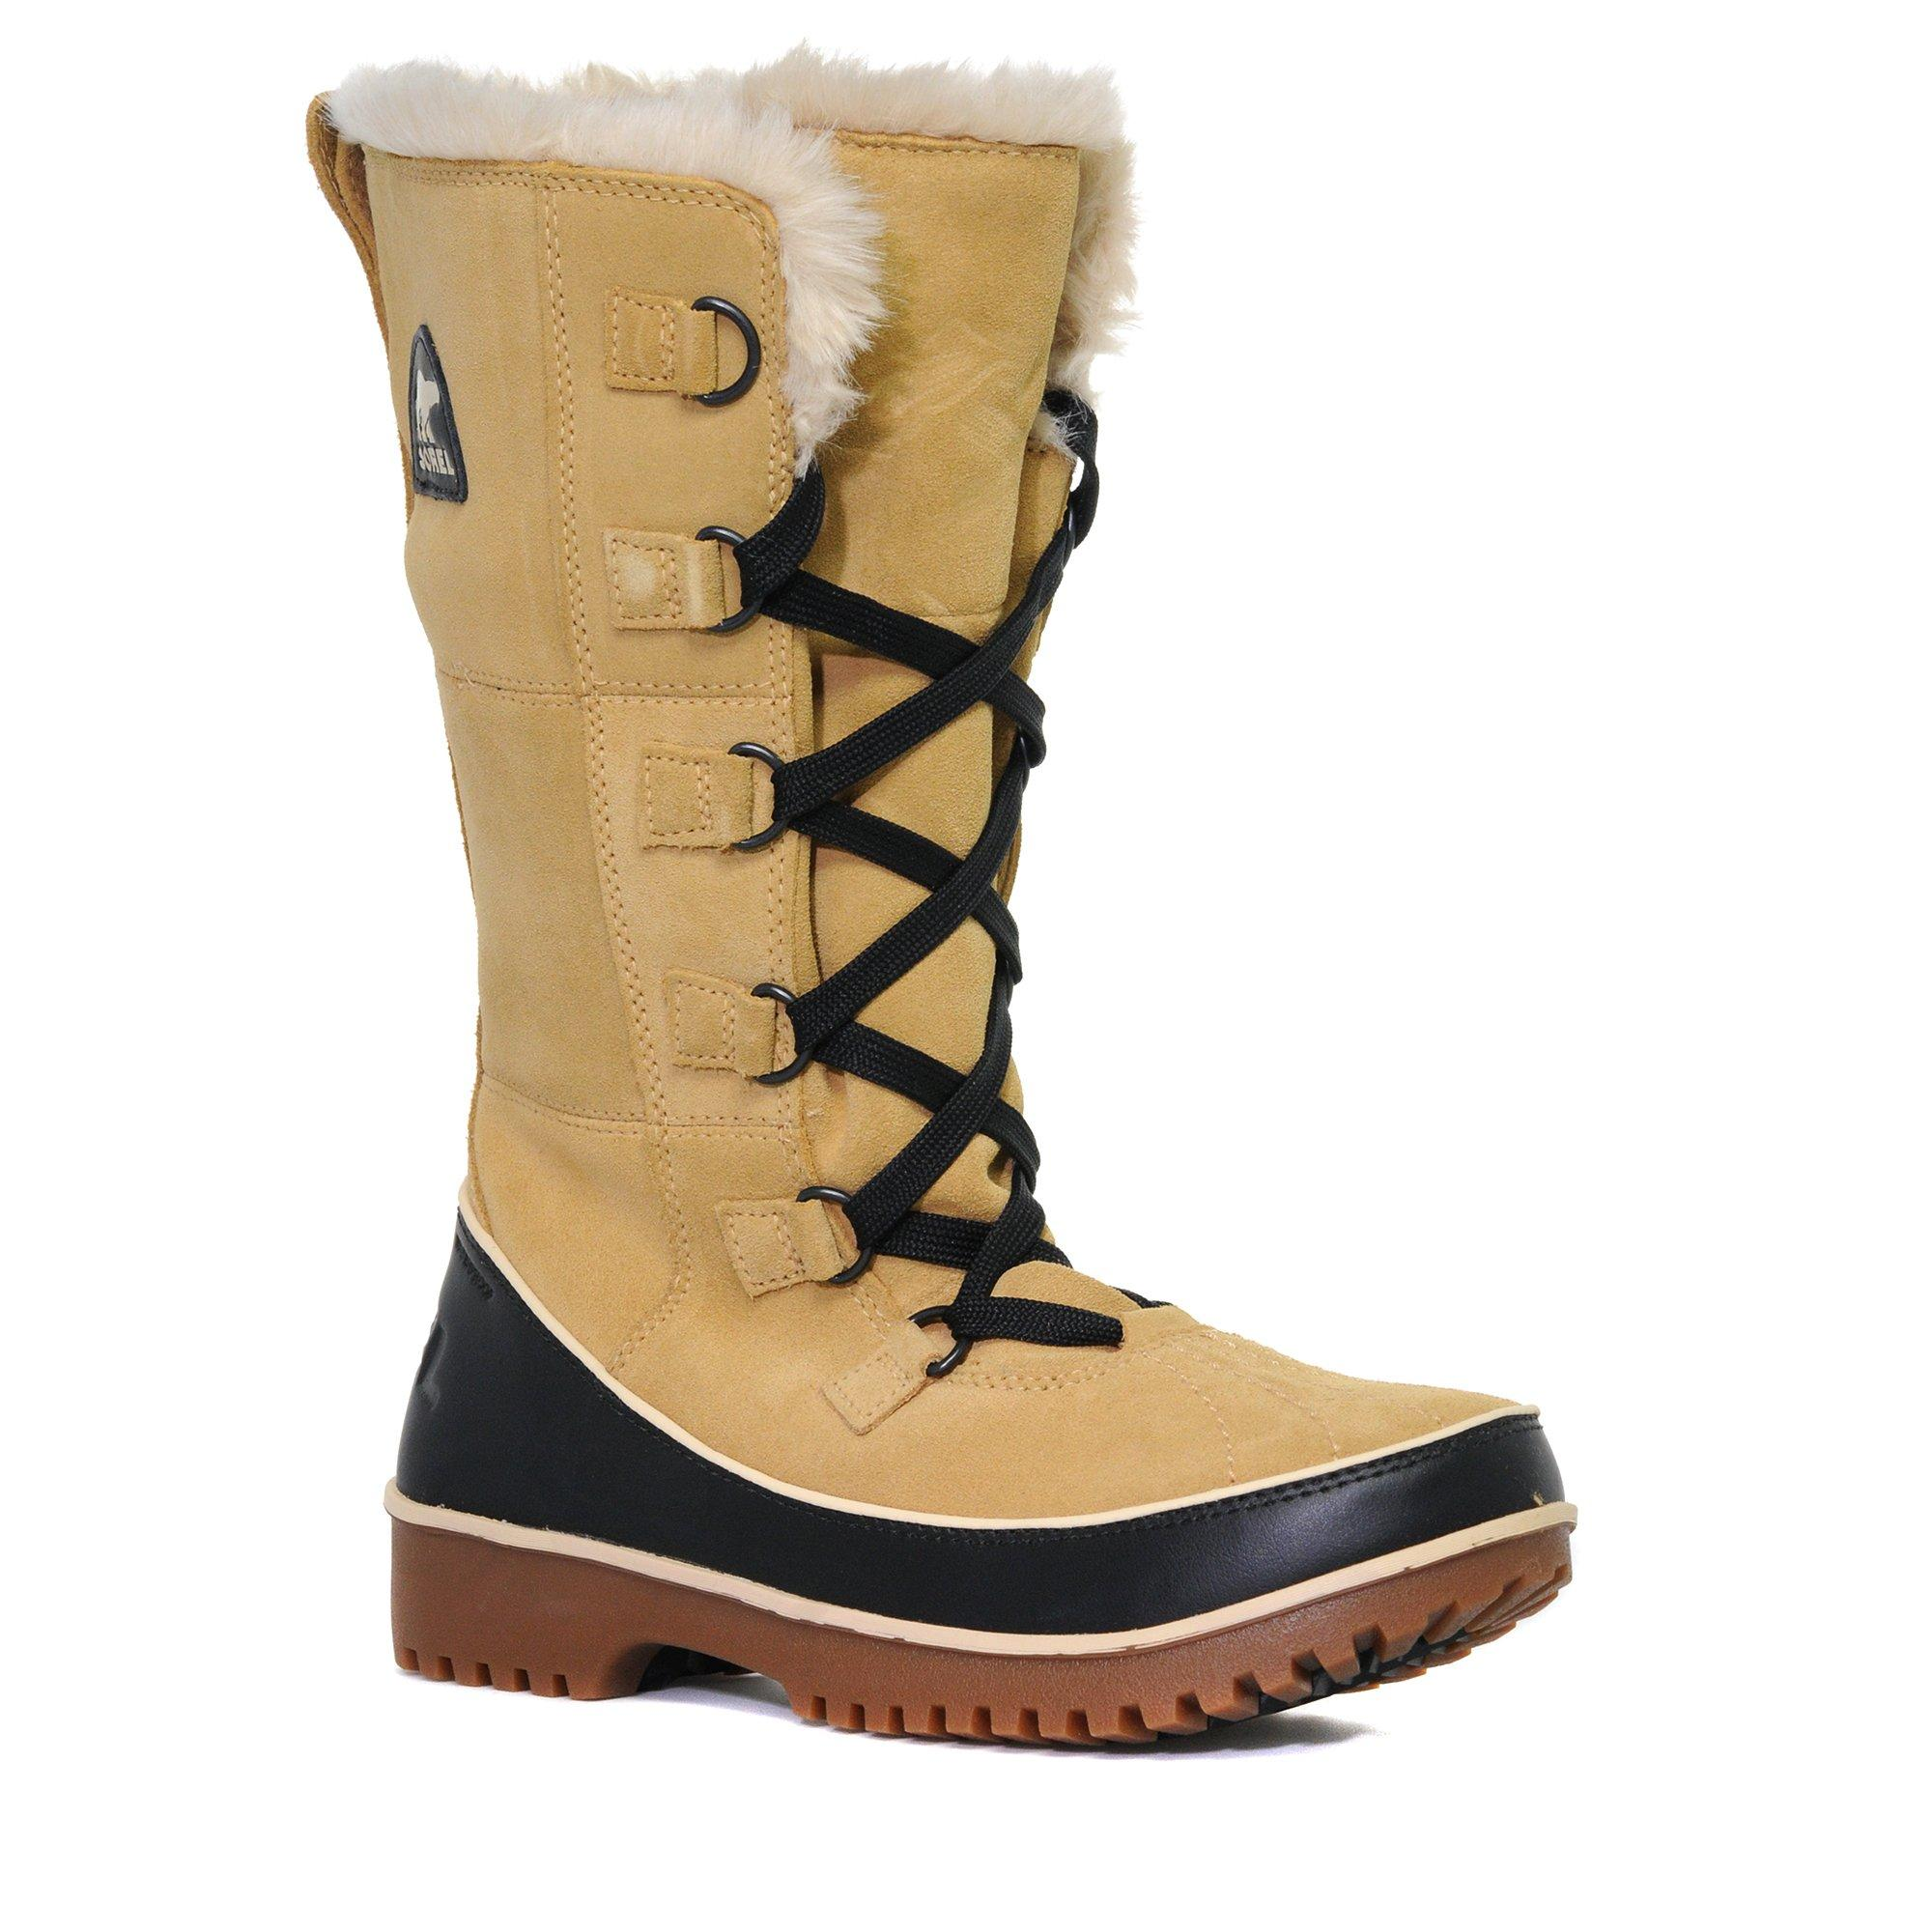 buy cheap sorel boots compare s footwear prices